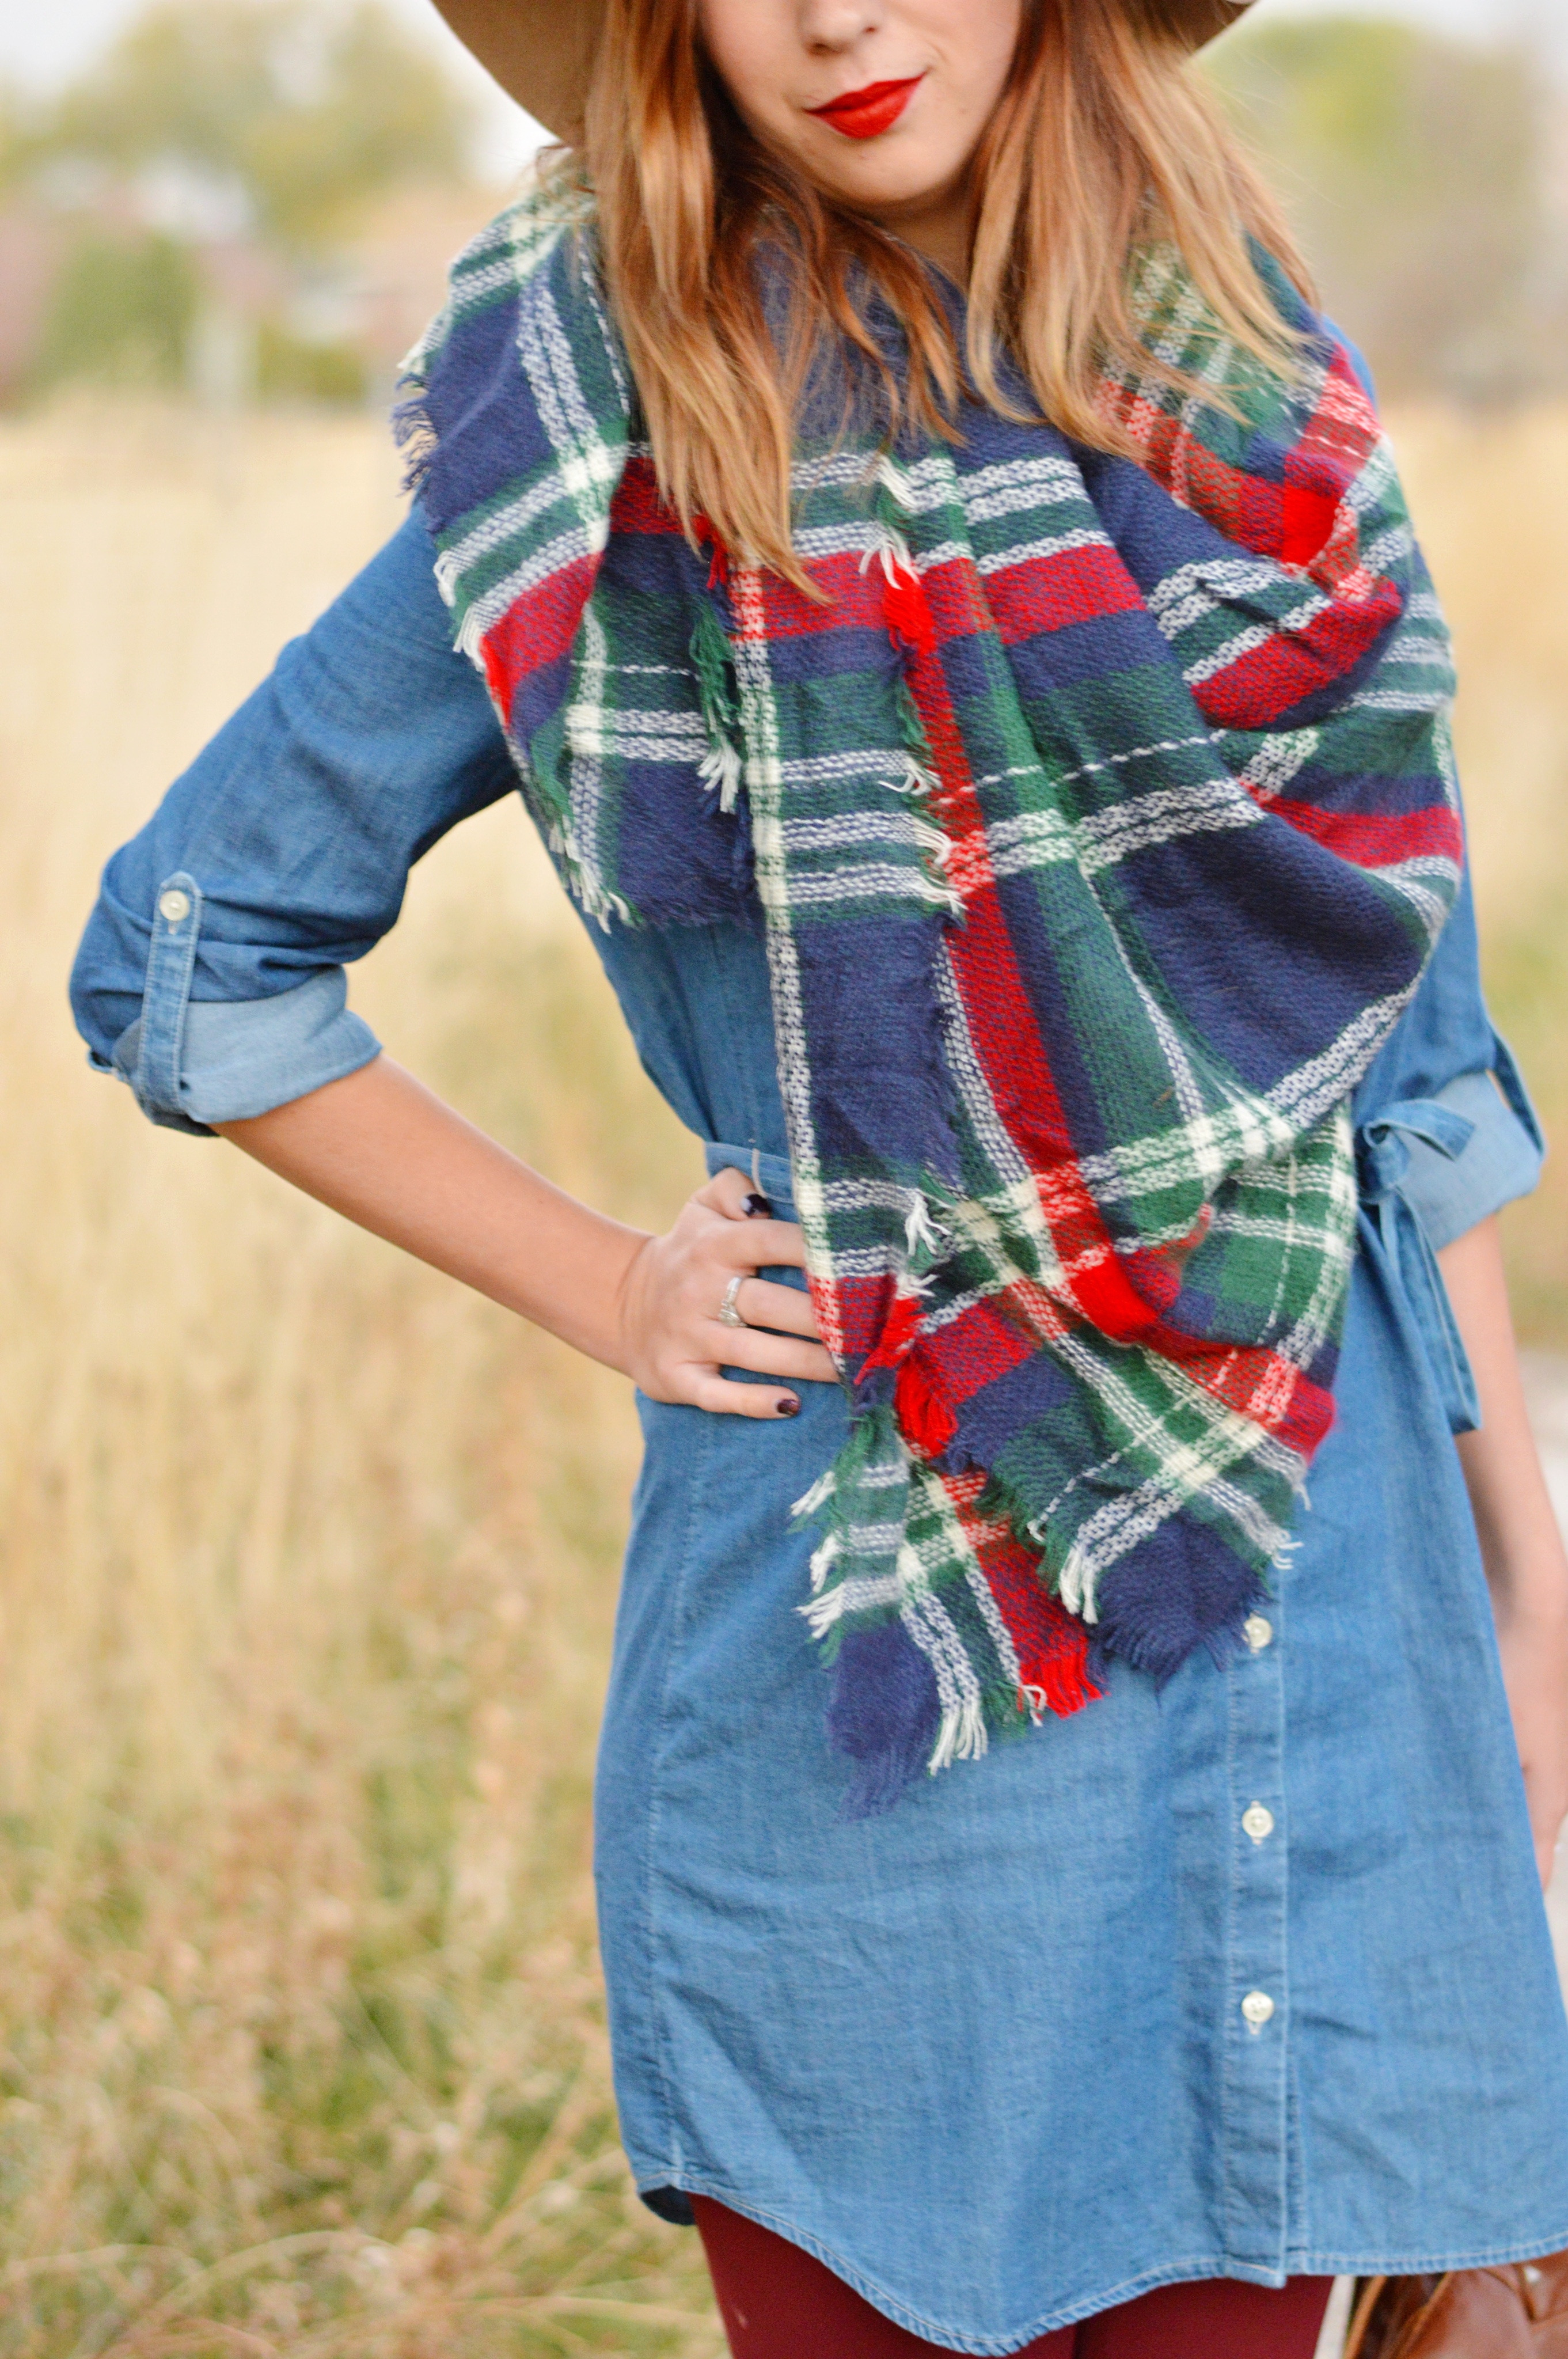 15+ Affordable Fall Outfits to Wear // Sharing my secret to building my Fall 2016 wardrobe on a budget while staying on top of trends. This chambray shirt dress, blanket scarf, booties and floppy hat combo is a great fall outfit and cost me under 40 dollars to put together. Get the details on this outfit and 15 more fall outfit ideas here